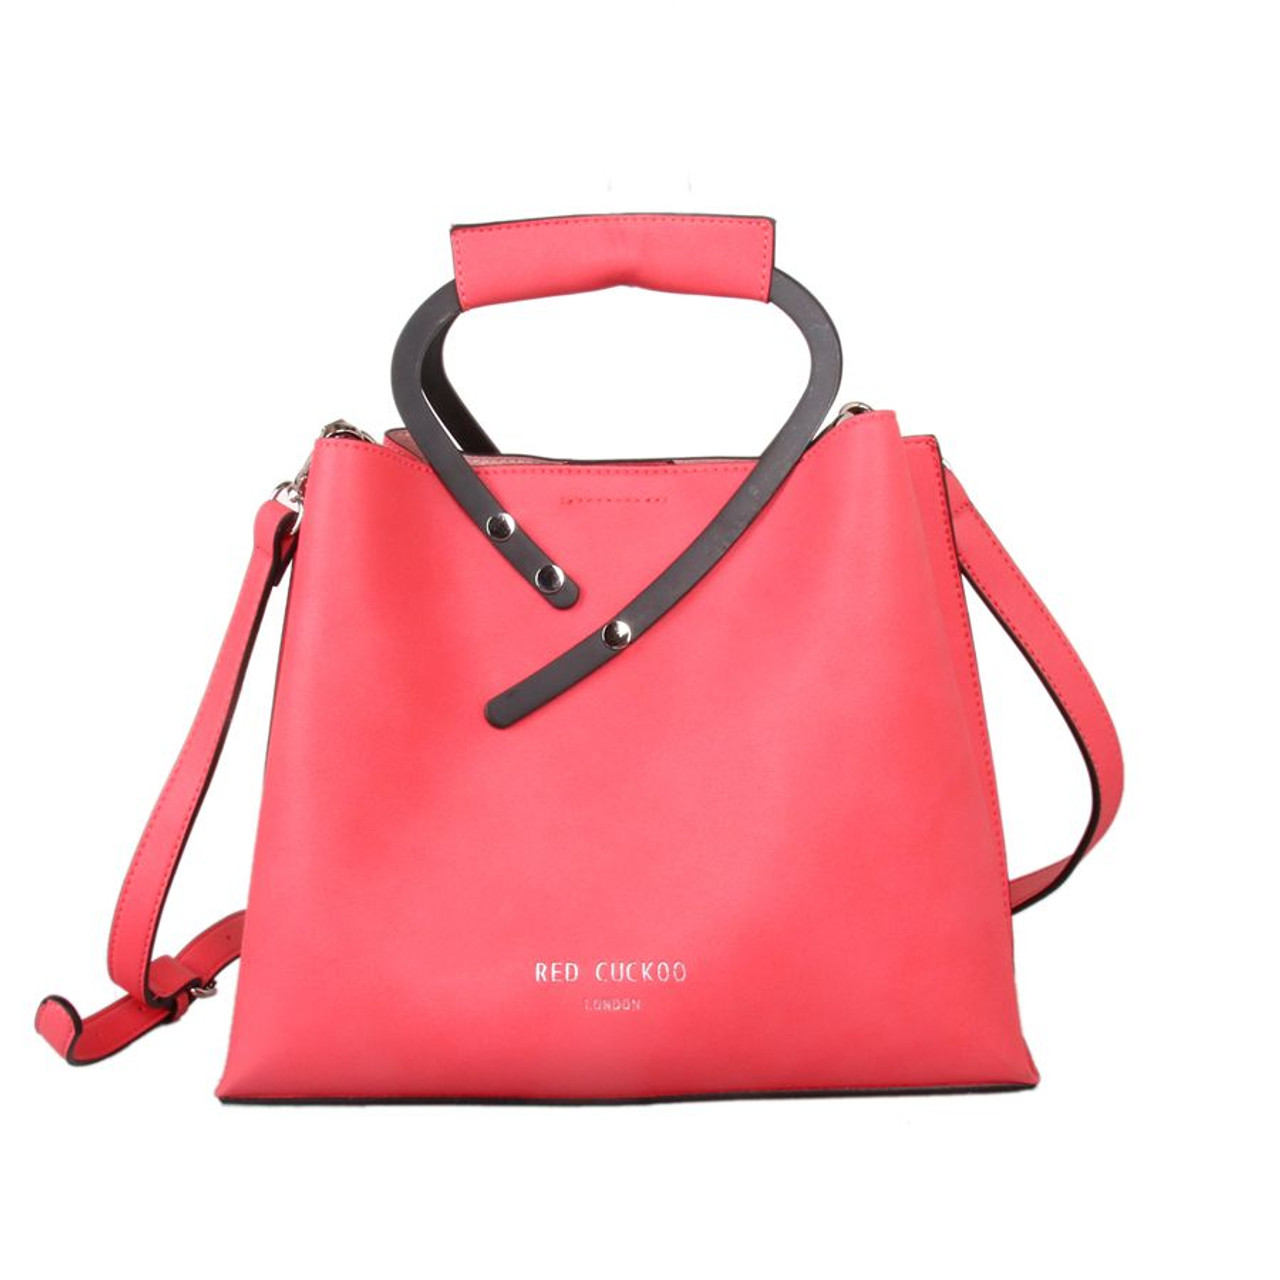 acd4966d4f447 Red Cuckoo Coral Handle Tote Bag - Itsy Bitsy Boutique